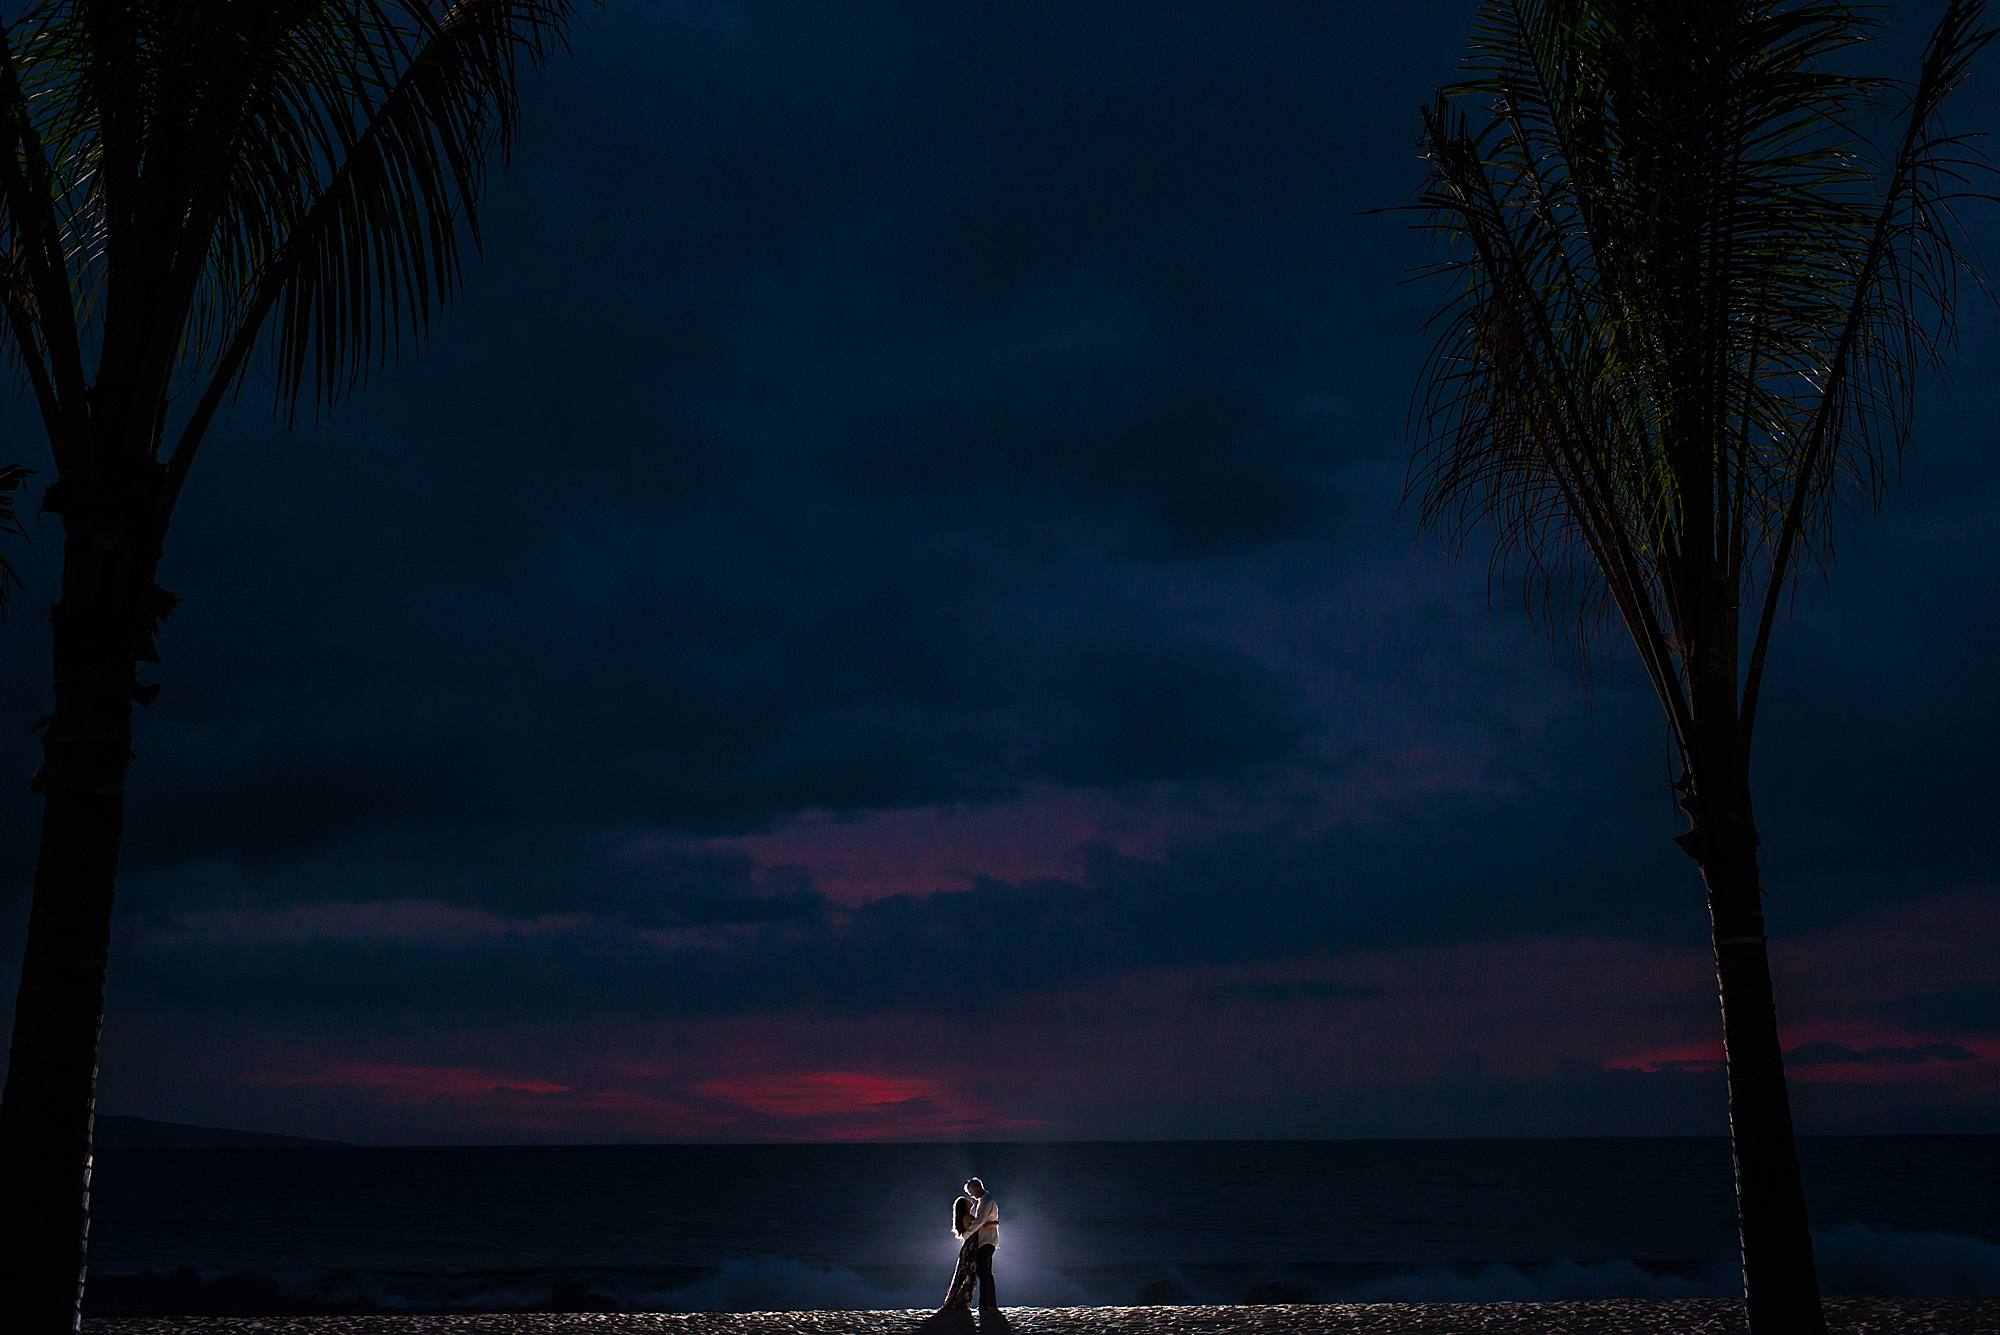 moody sunset photo in maui